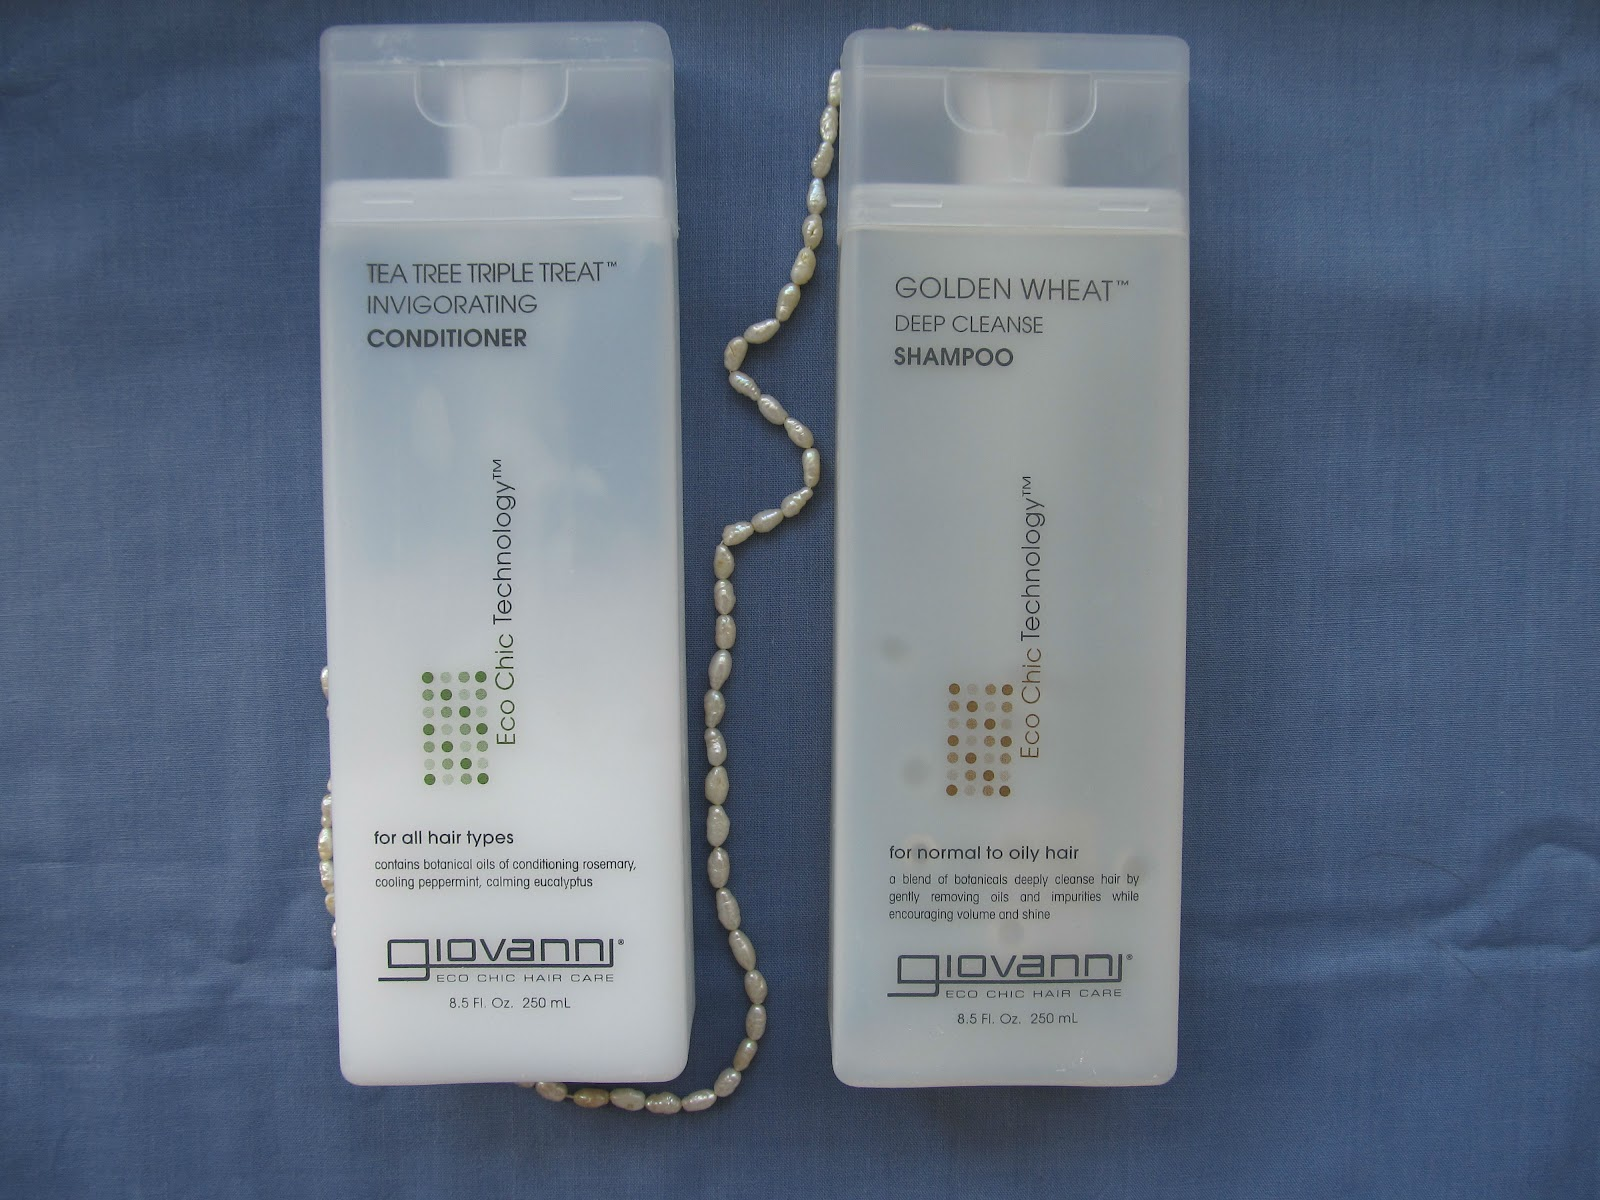 Giovanni Golden Wheat Deep Cleanse Shampoo and Tea Tree Triple Treat Invigorating Conditioner